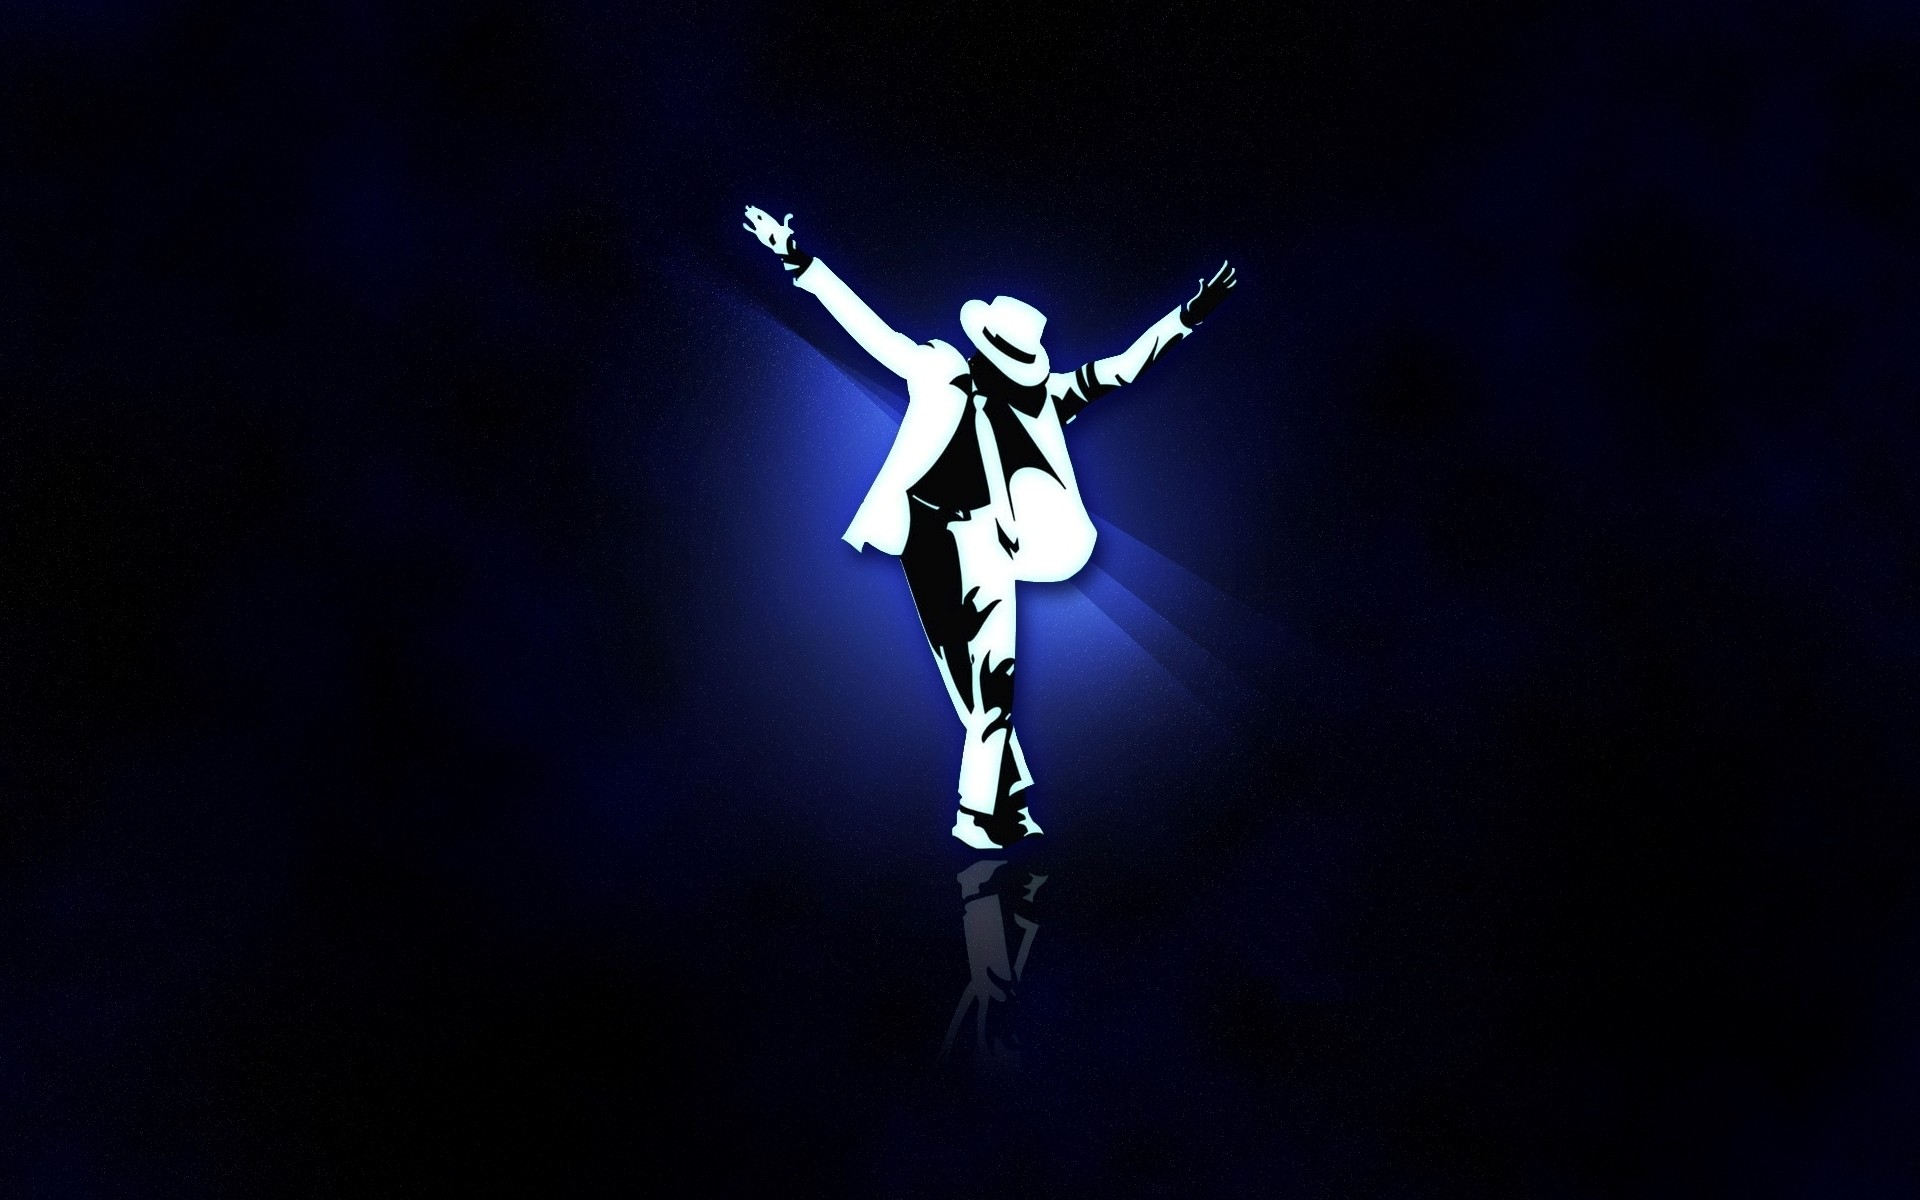 1920x1200 Michael Jackson Songs images michael jackson HD wallpaper and background  photos